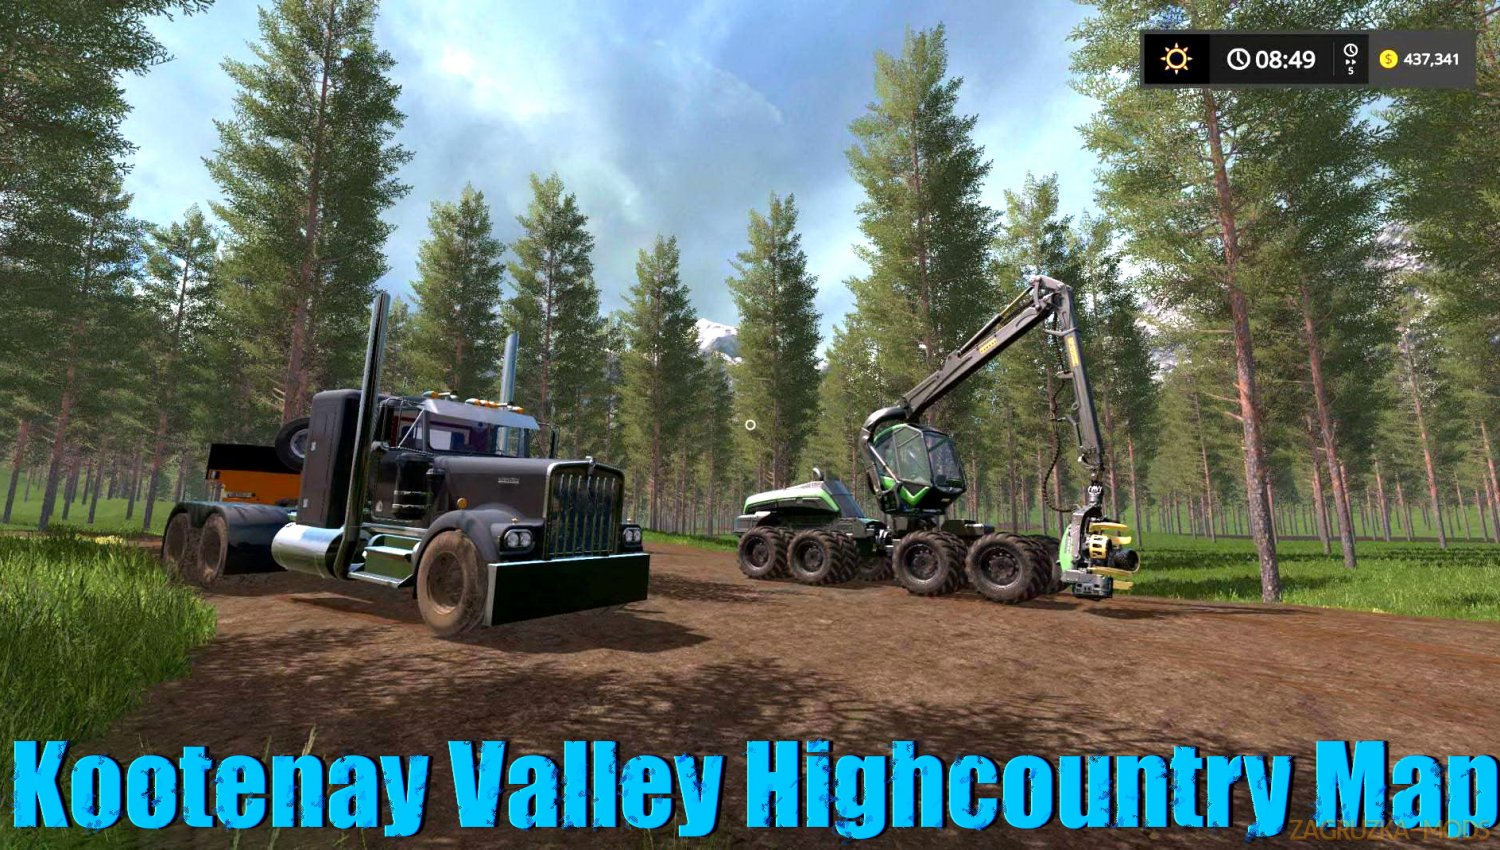 Kootenay Valley Highcountry Map v3.0 for FS17